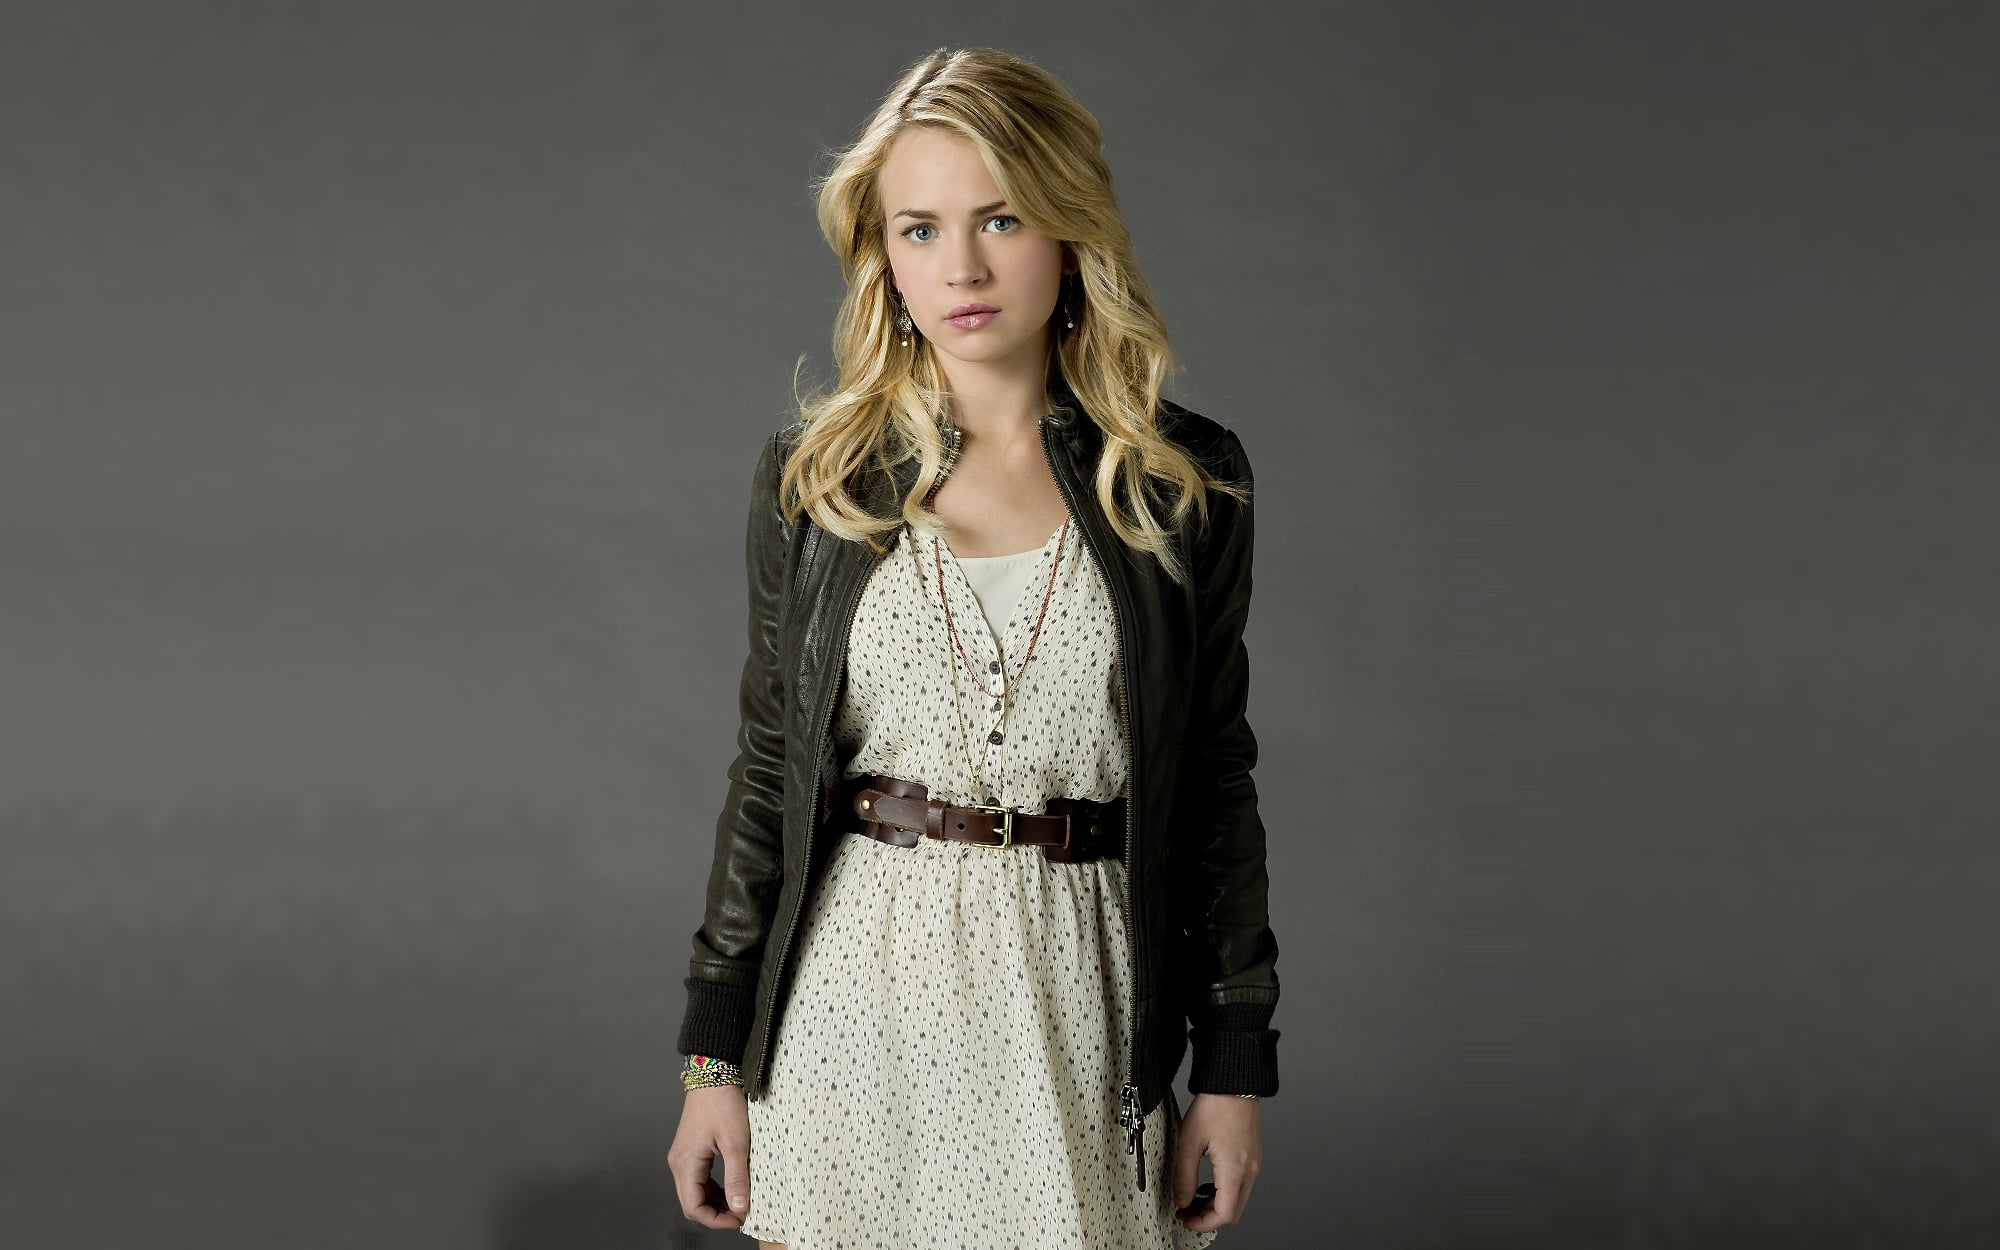 2000x1250 - Brittany Robertson Wallpapers 11